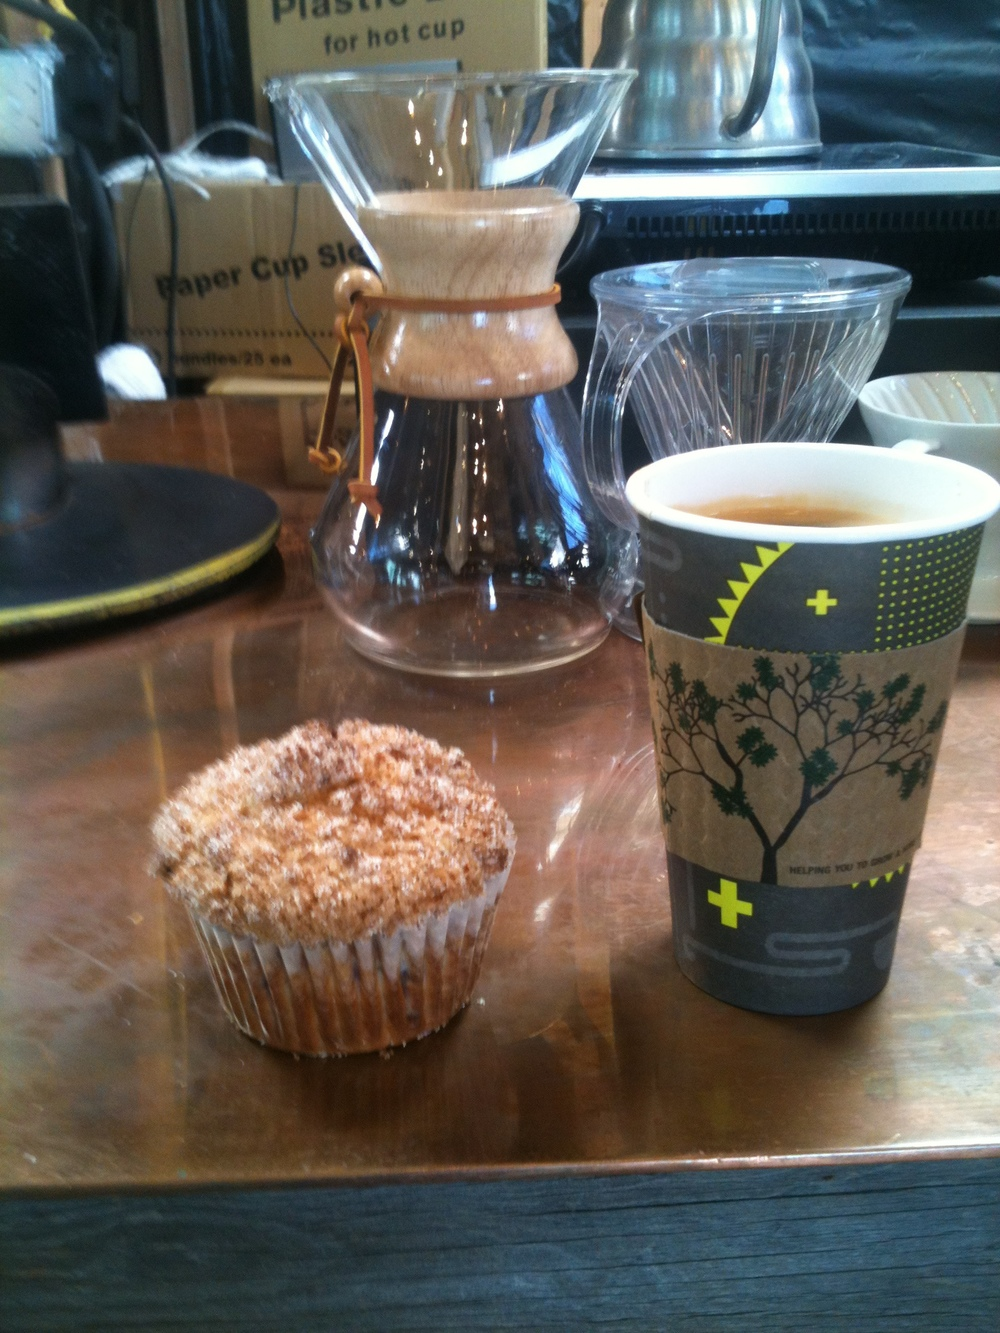 blueberry muffin, 4 shot americano, a caraffe of some sort.